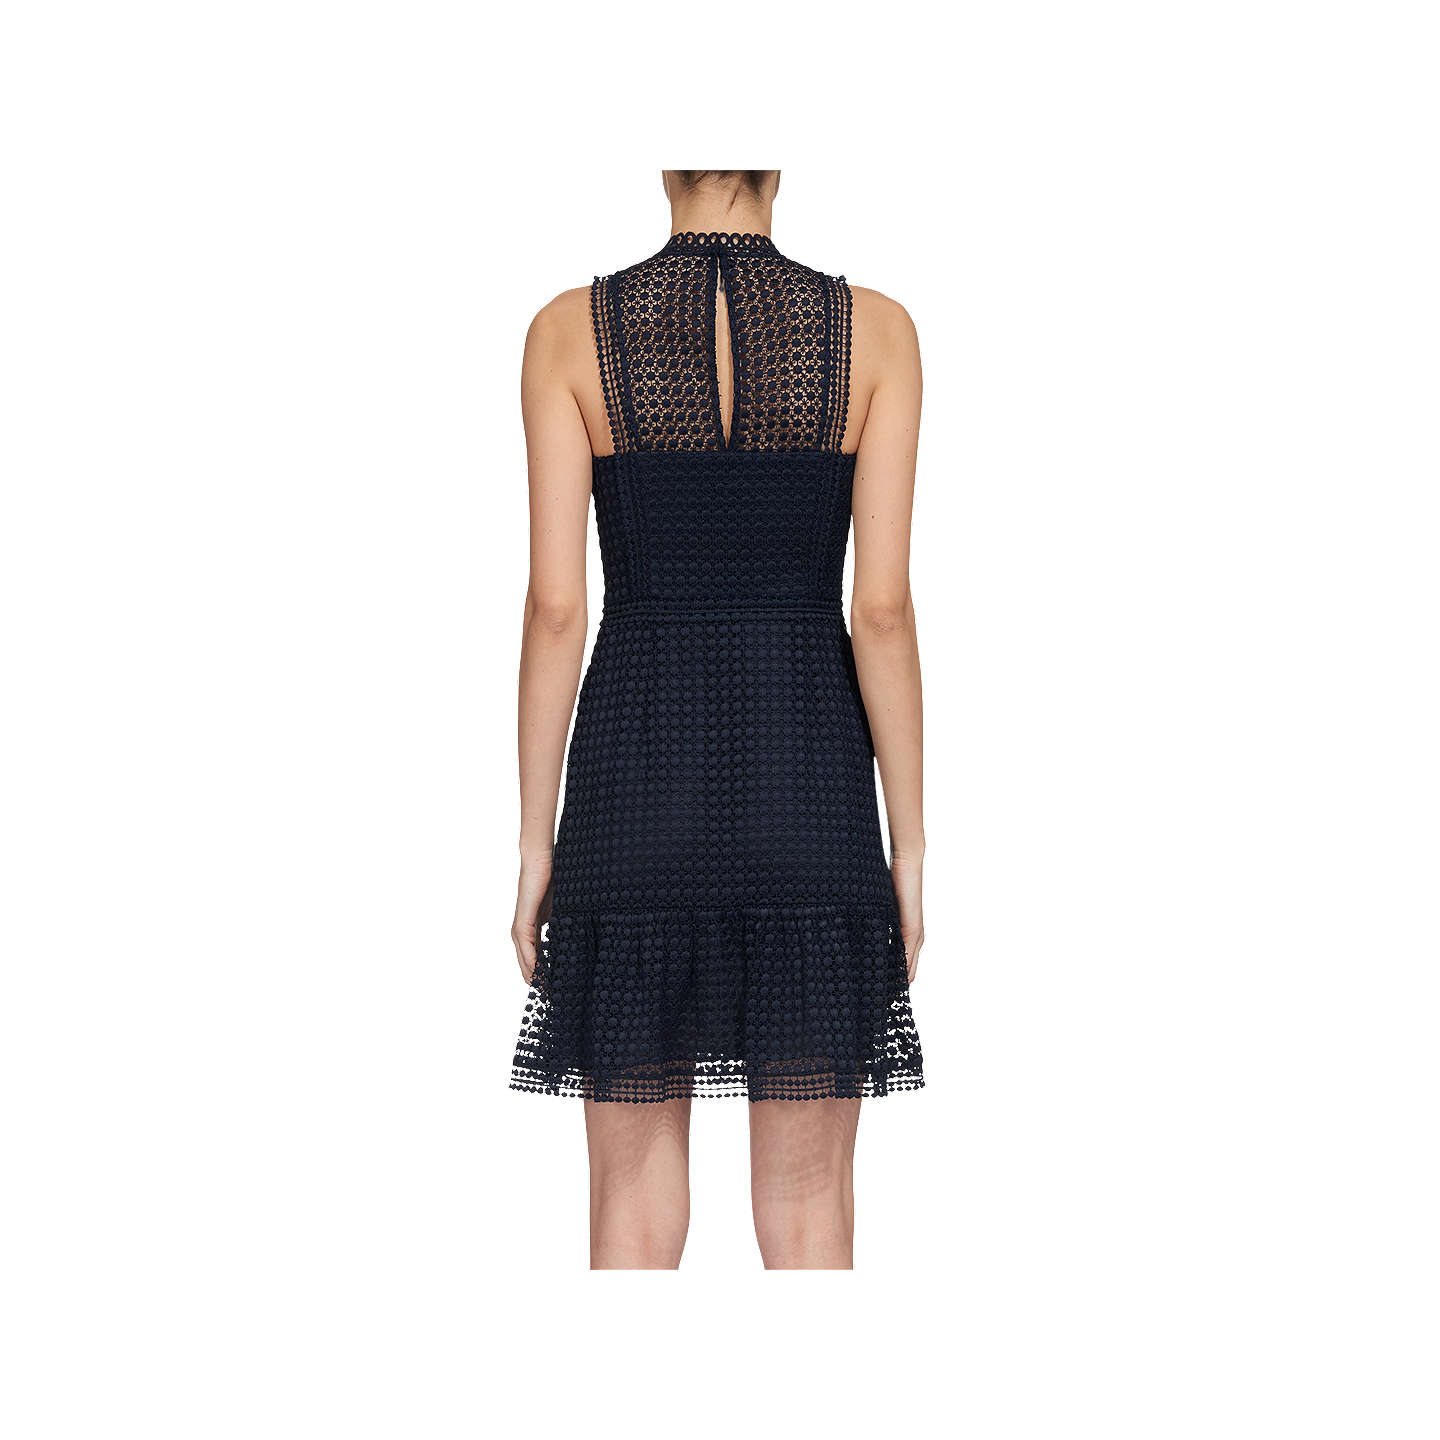 BuyWhistles Flo Embroidered Dress, Navy, 6 Online at johnlewis.com